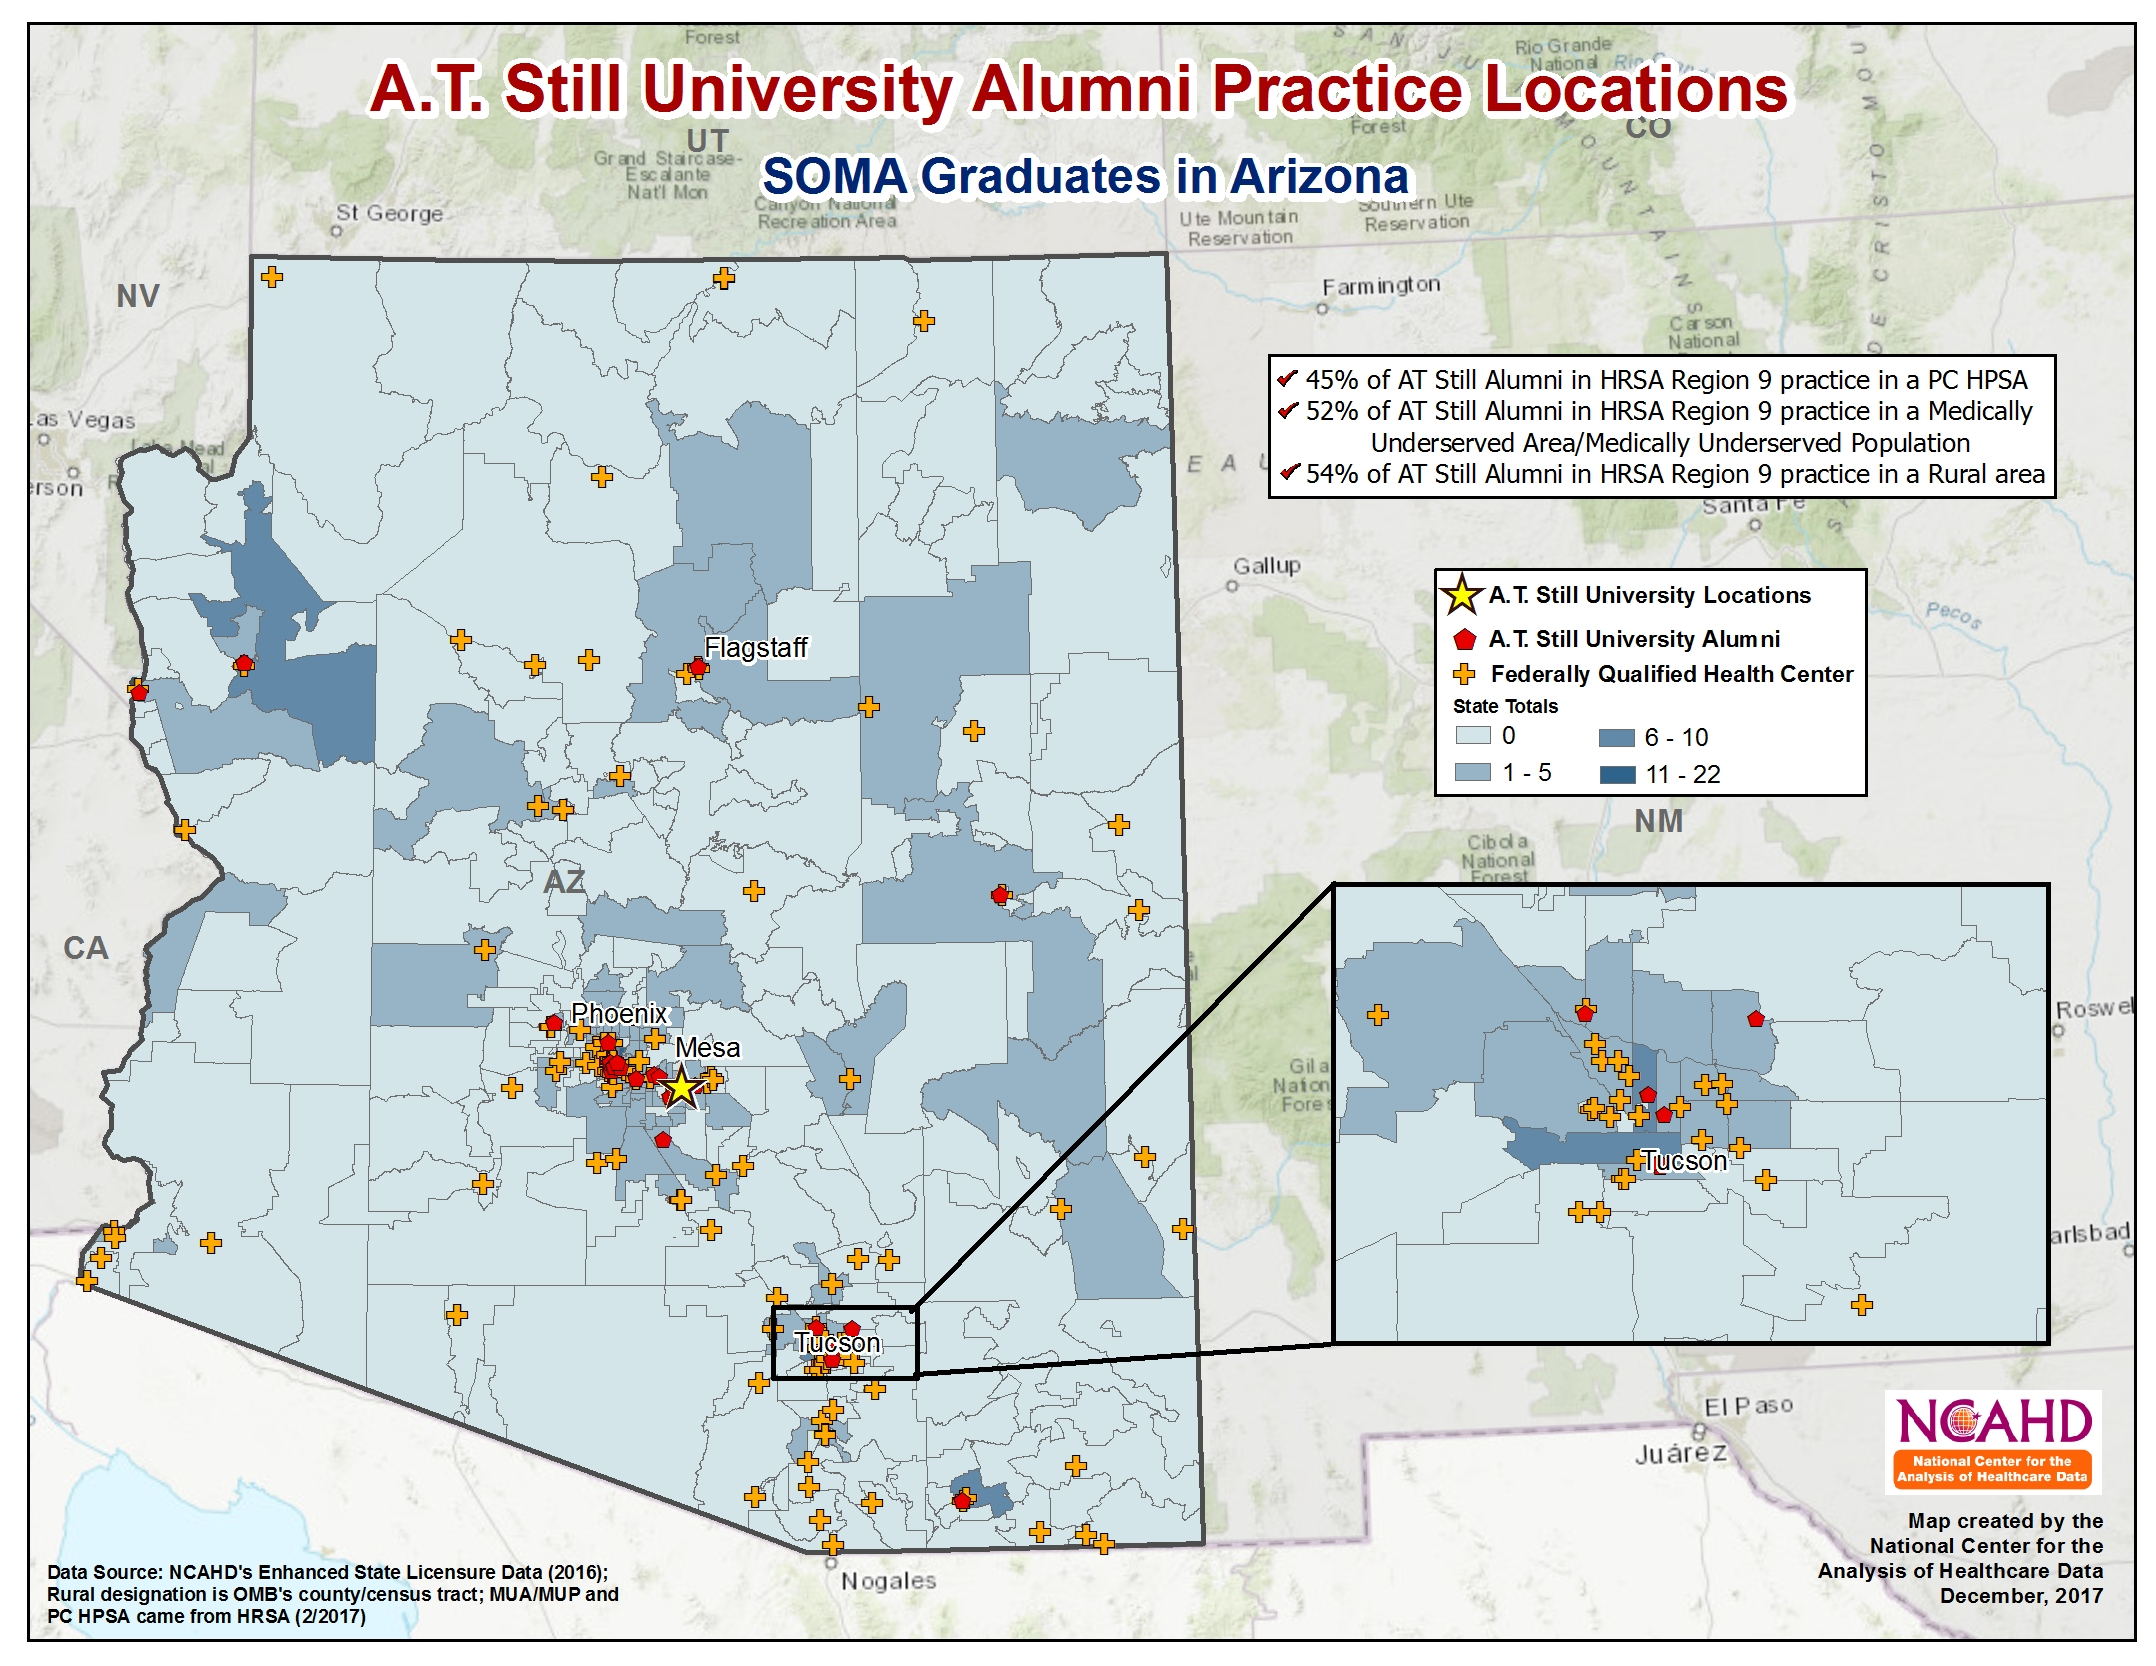 AT Still National Alumni Pracitce Locations Arizona SOMA